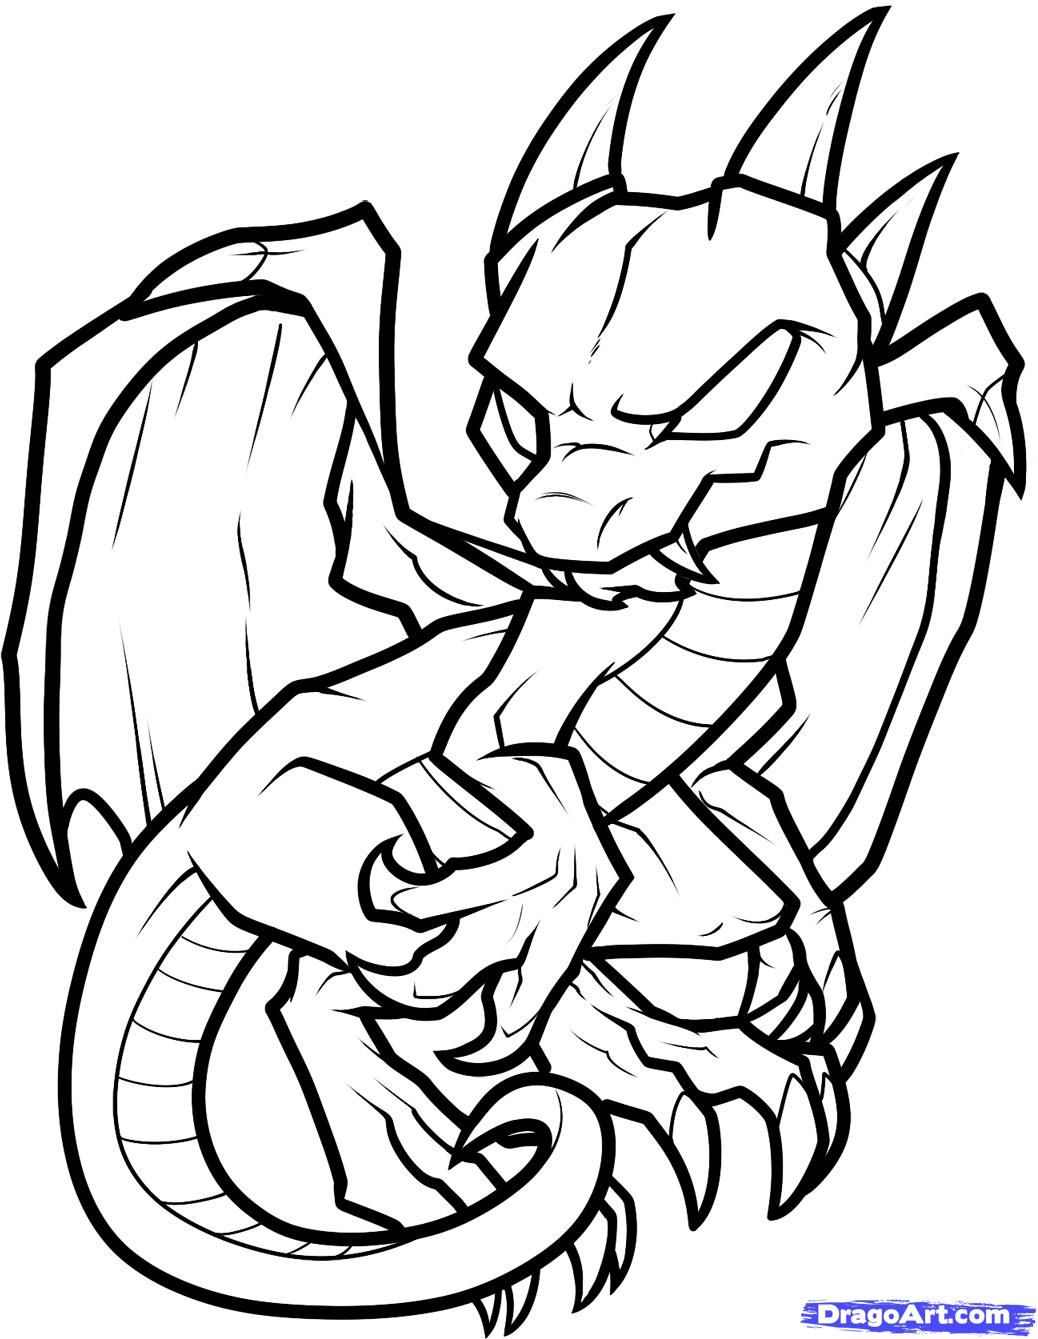 Genial Dragon Coloring Pages | How To Draw An Anthro Baby Dragon, Anthro Baby  Dragon,